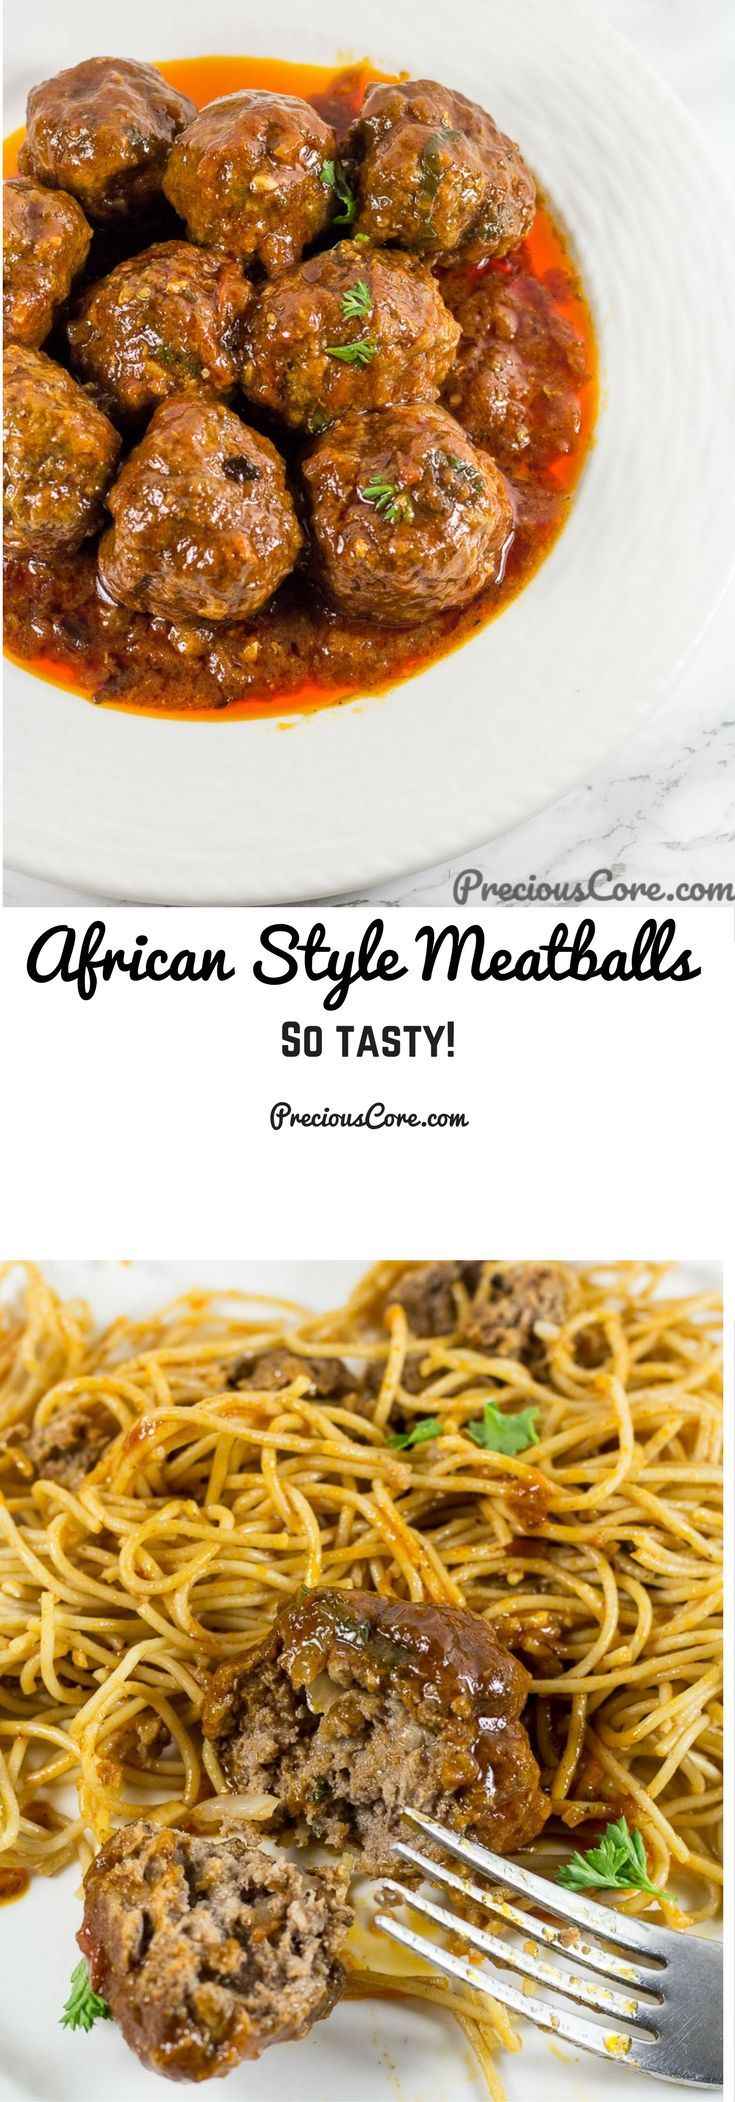 These African meatballs are made with garlic, parsley, onions and my all-time favorite spice, white pepper! They are simmered in an insanely flavorful tomato sauce. In my home, we eat this with pasta or rice. So good! Get the recipe on Precious Core. #Meatballs #AfricanFood #Dinner